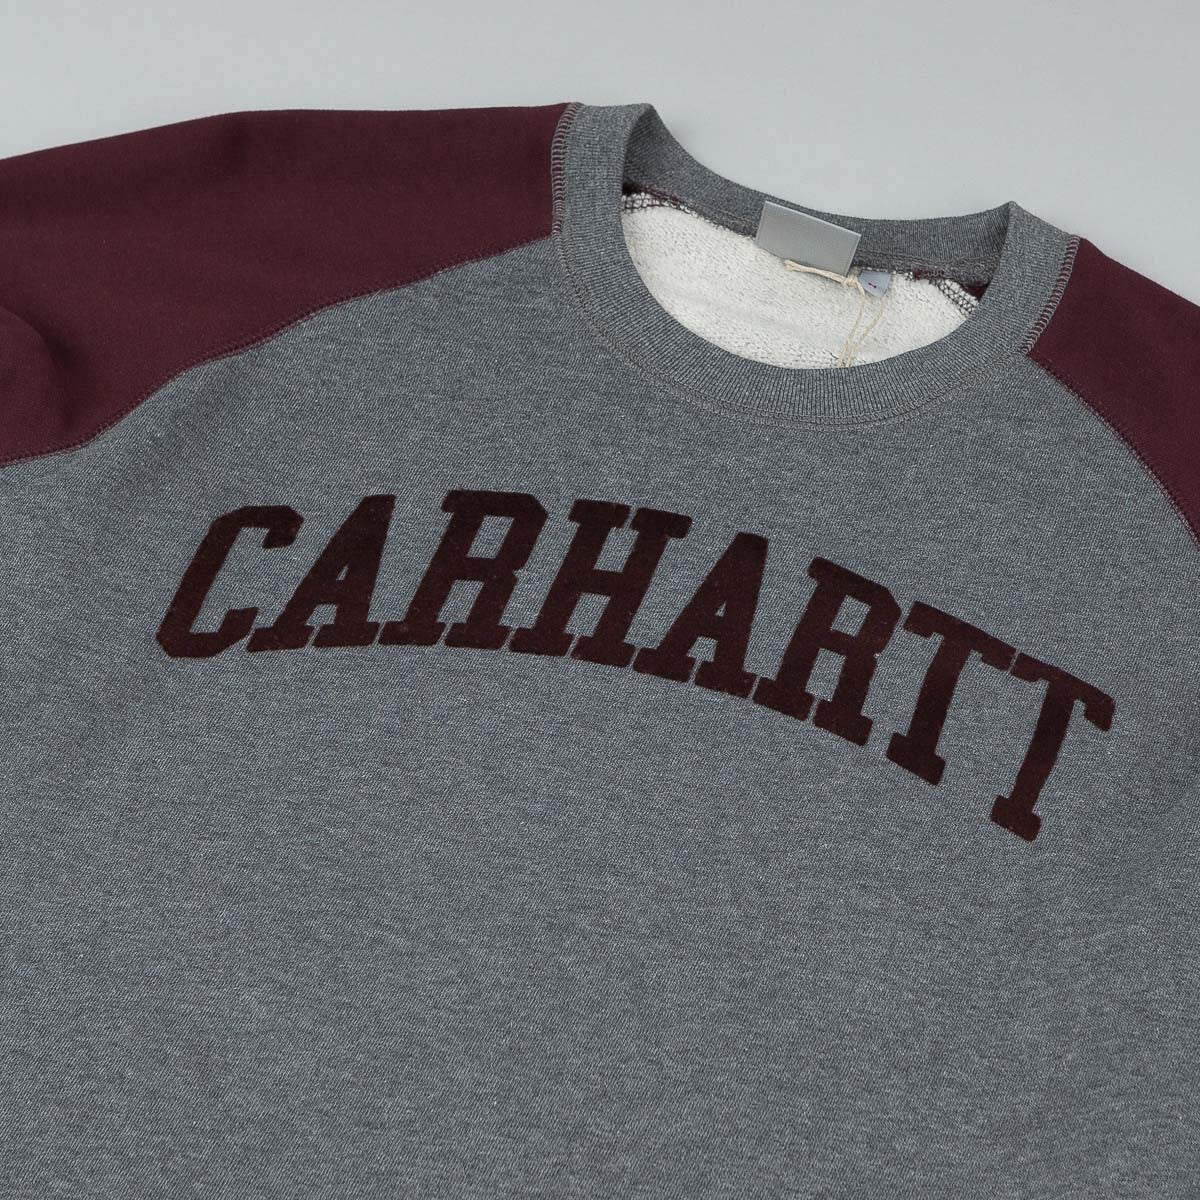 Carhartt Randall Crew Neck Sweatshirt - Dark Grey Heather / Damson